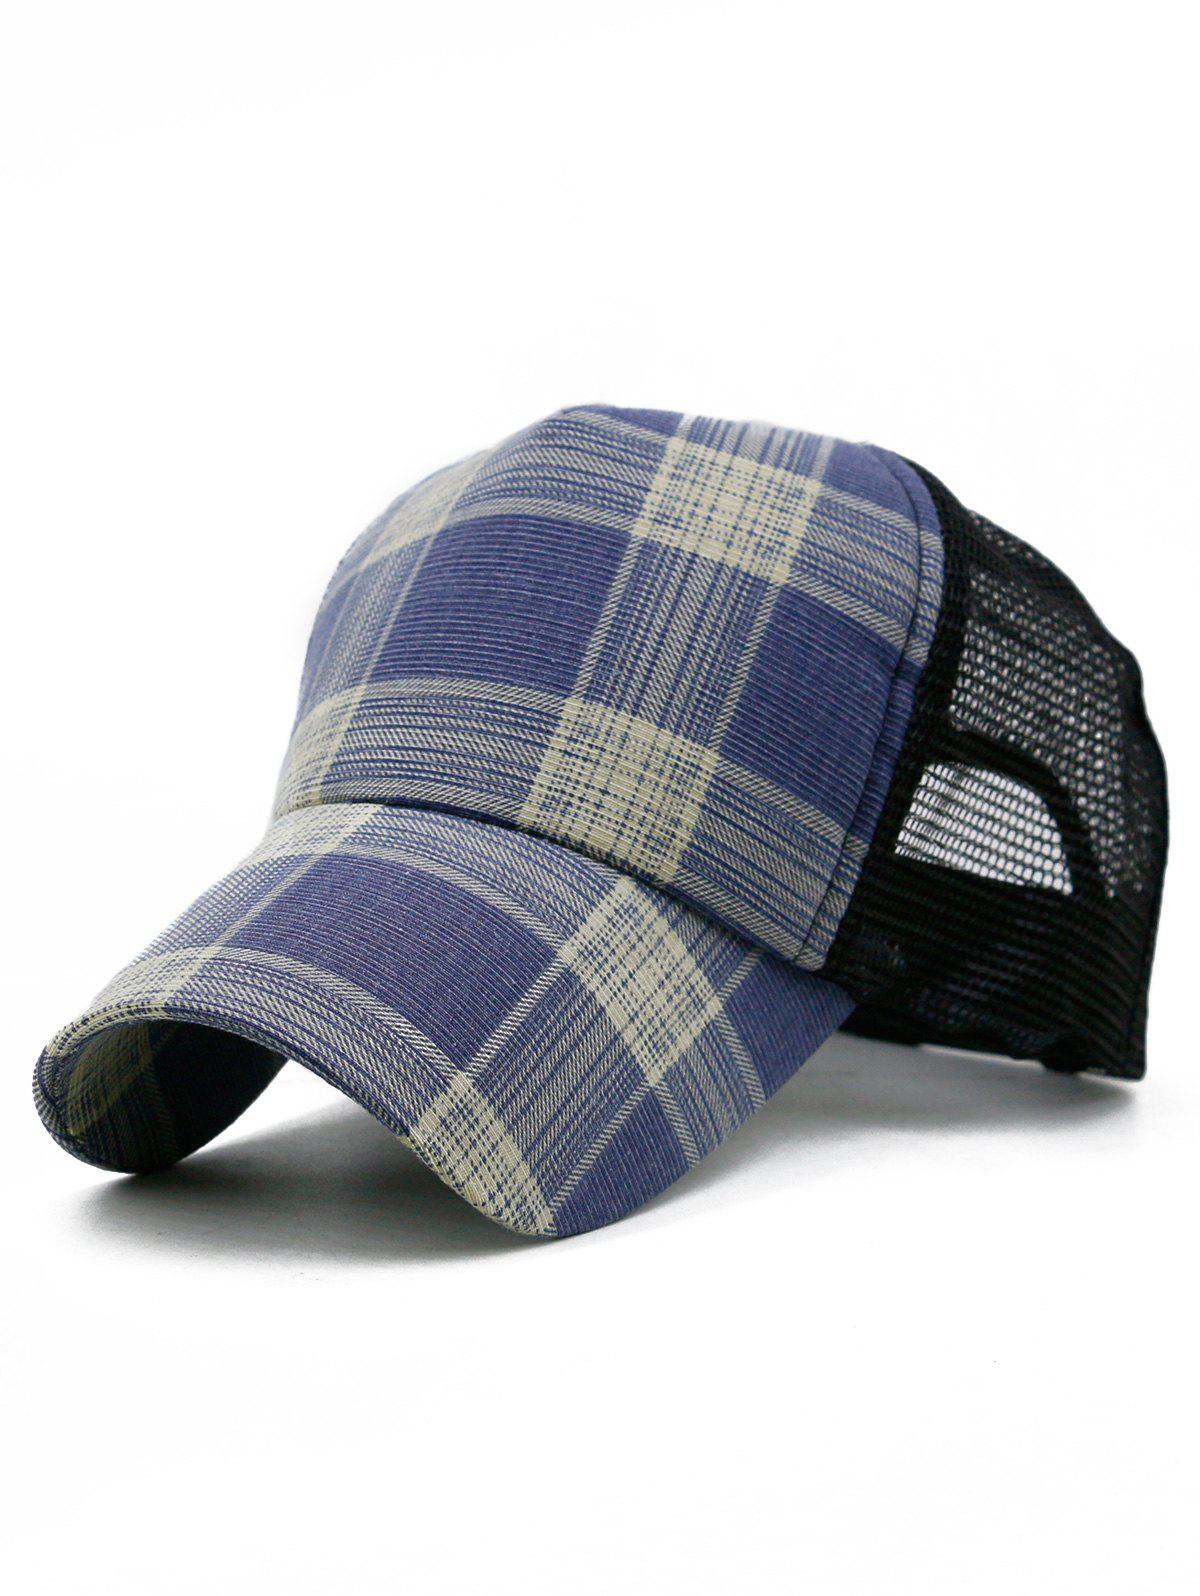 Outdoor Plaid Printed Mesh Sunscreen Hat - STEEL BLUE